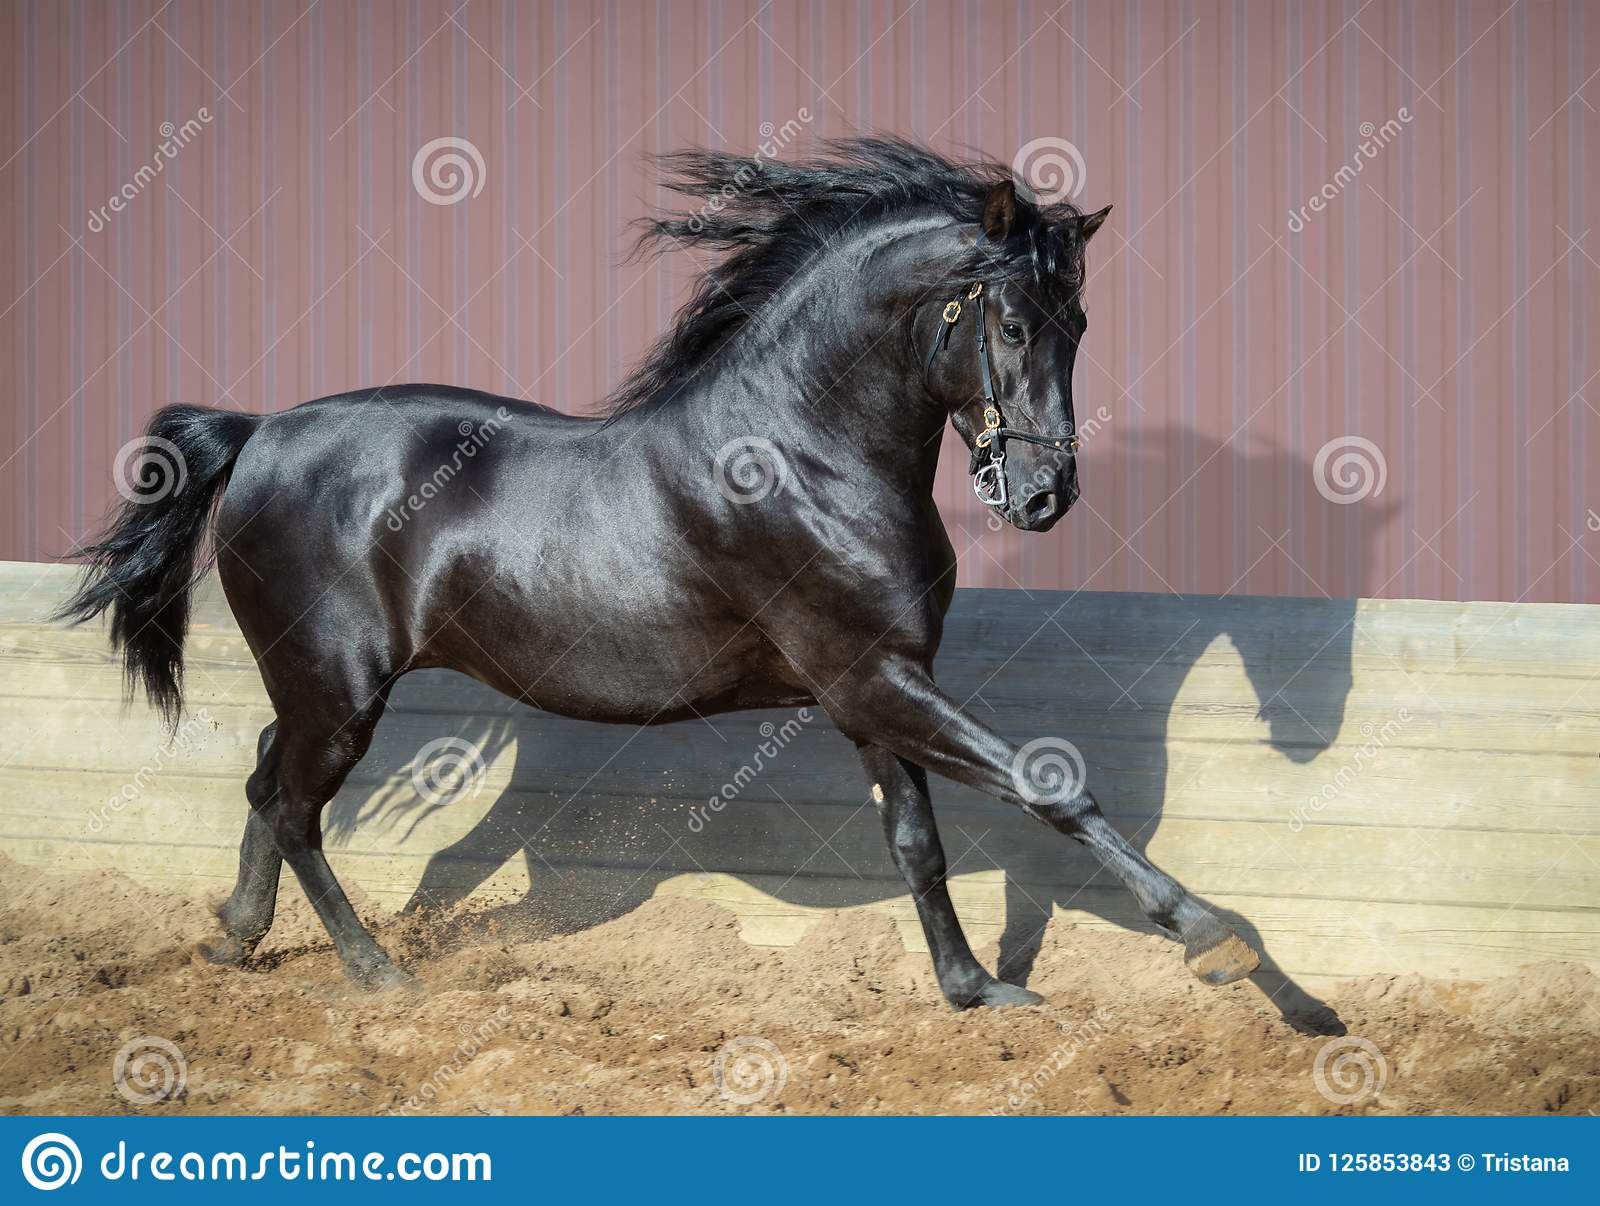 32 244 Running Horse Photos Free Royalty Free Stock Photos From Dreamstime